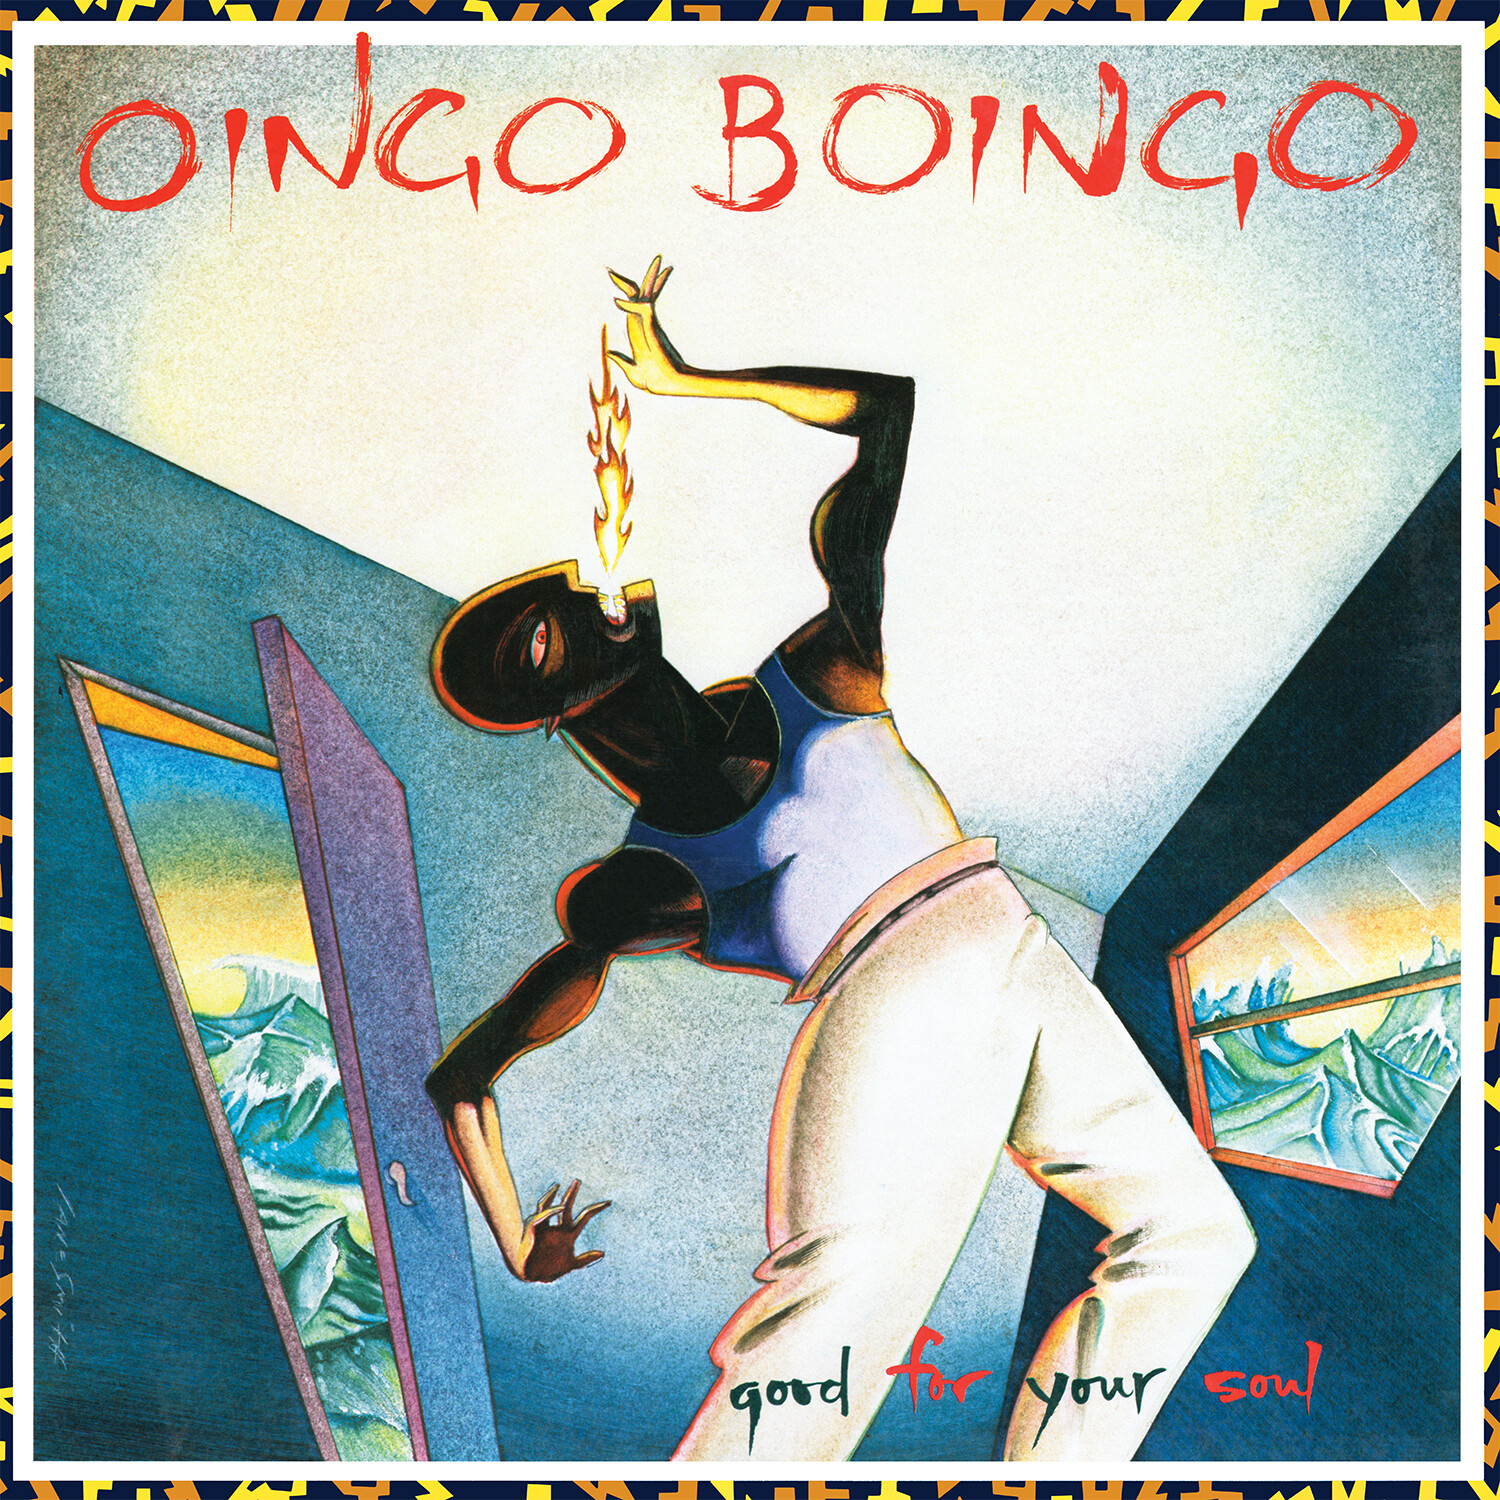 Oingo Boingo / Good For Your Soul CD (Remastered & Expanded Edition)